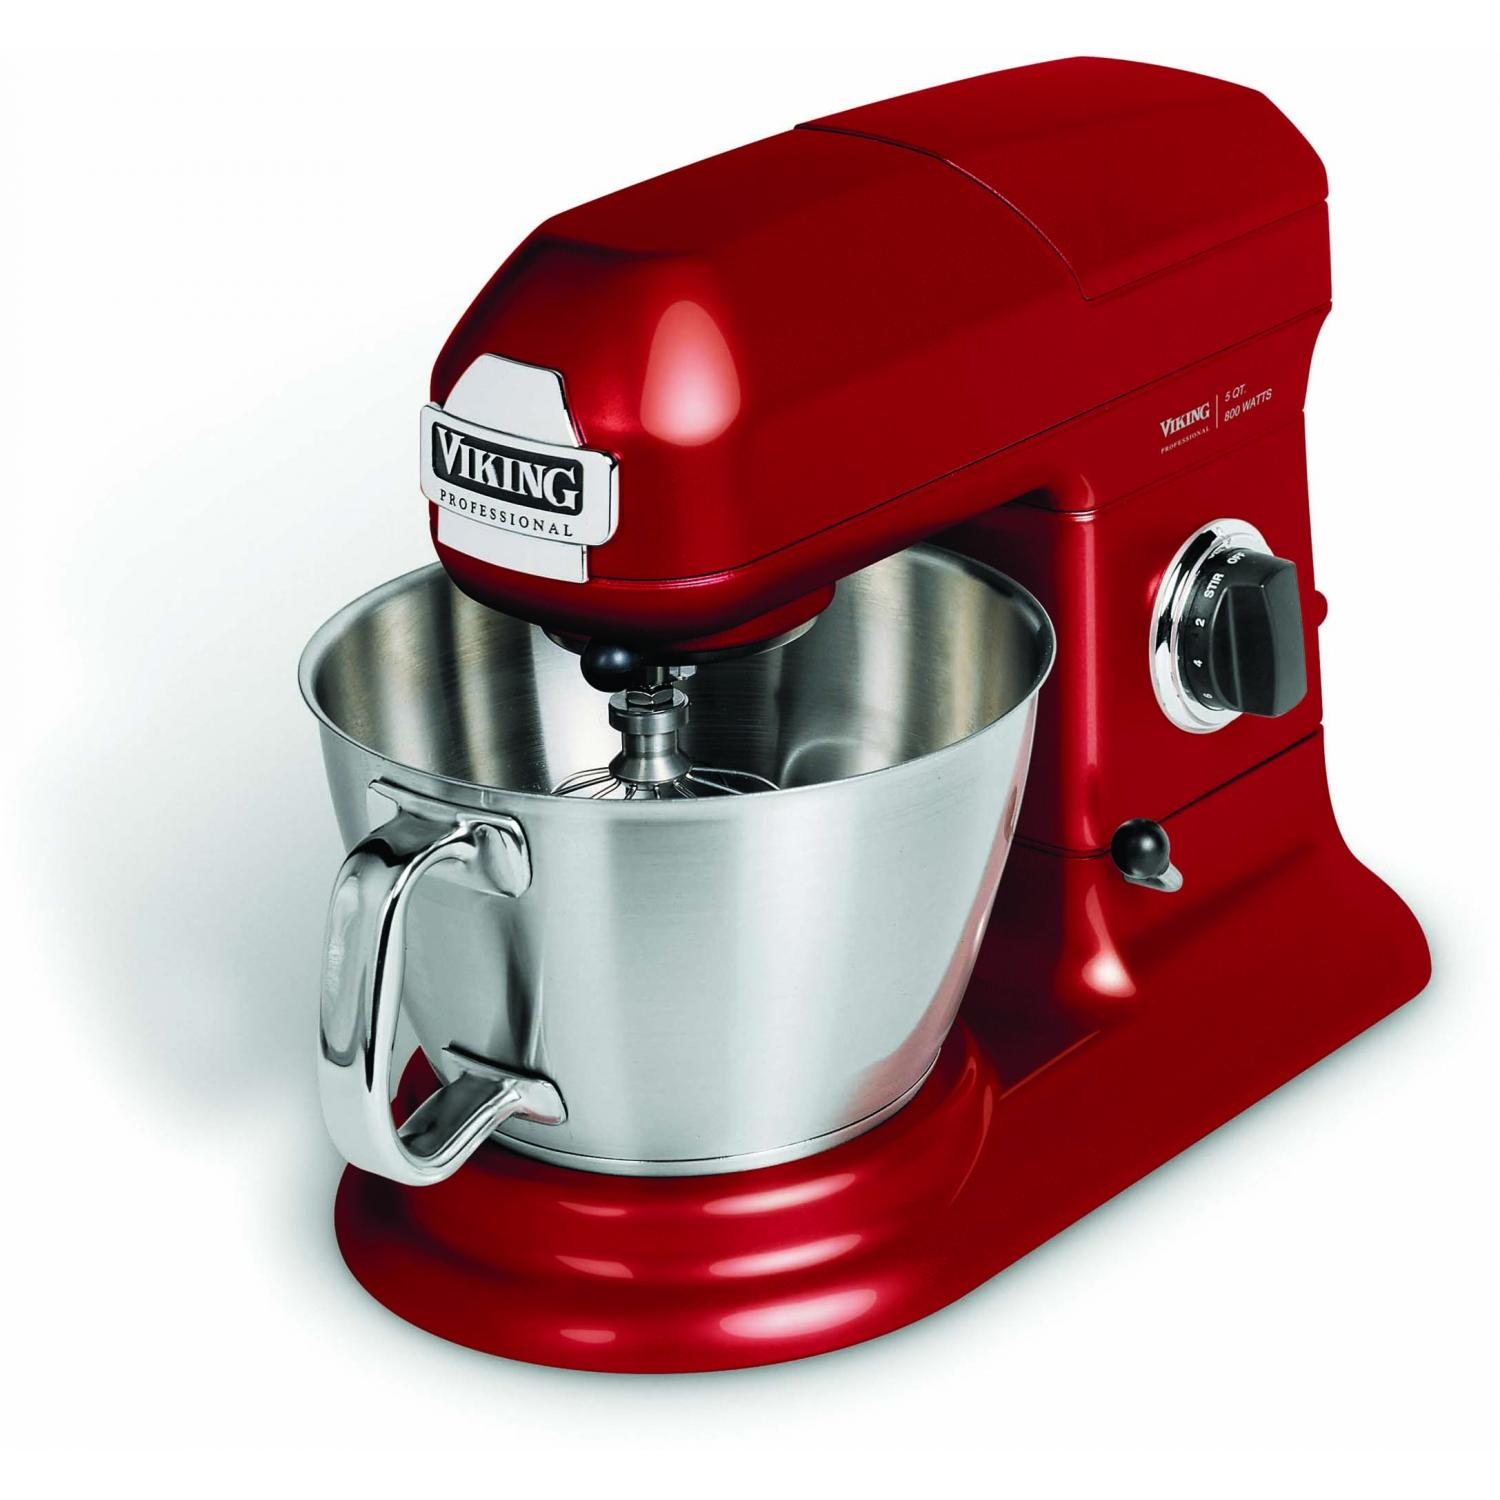 Viking VSM500BR Professional 5-Quart Stand Mixer - Bright Red